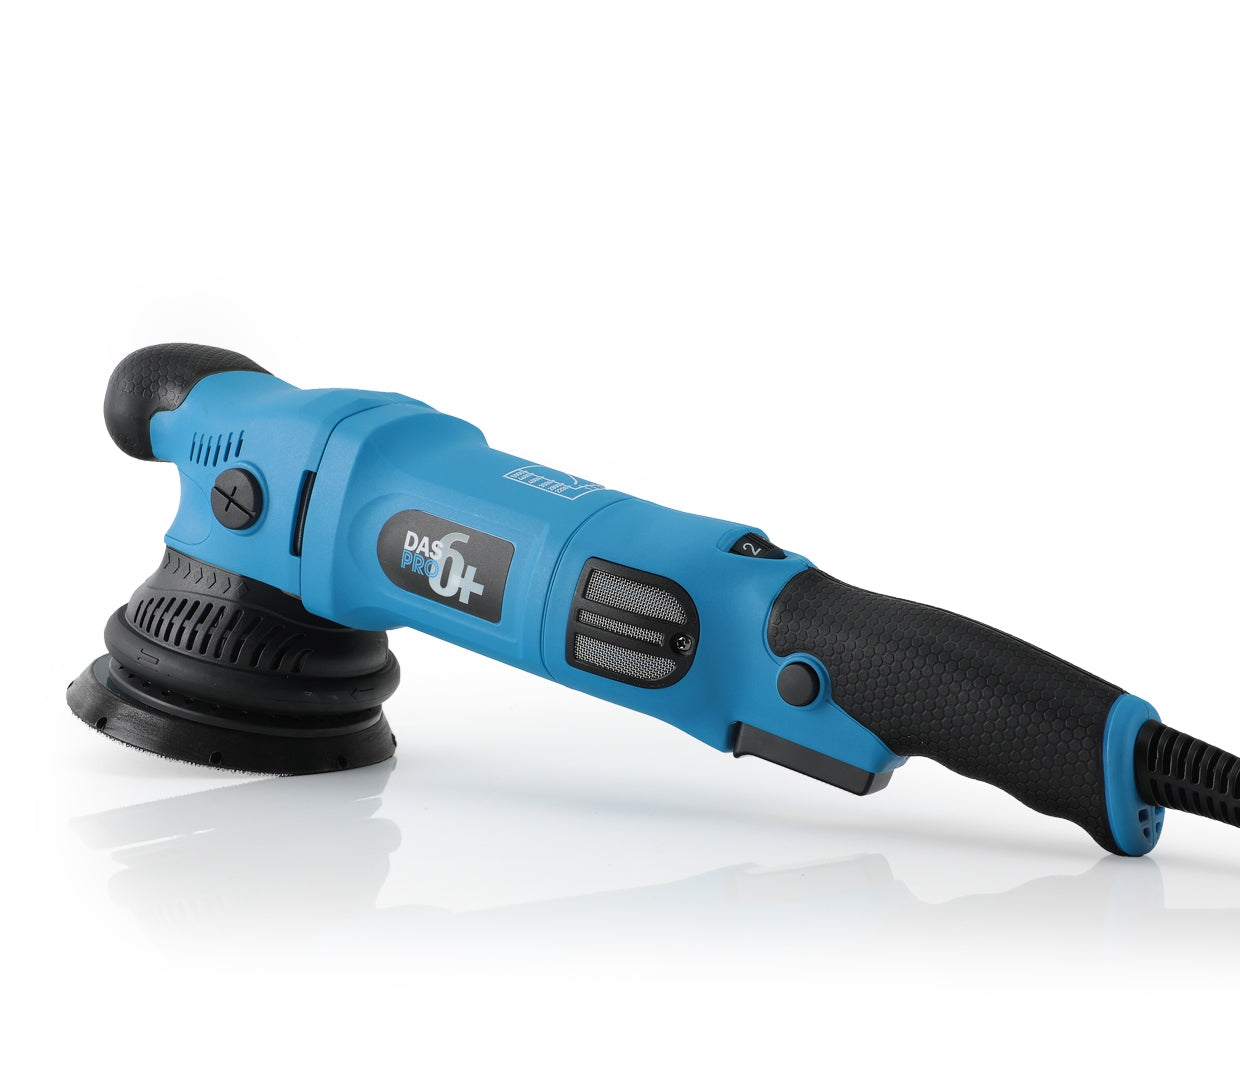 DAS 6 Pro Plus - 15mm Dual Action Polisher